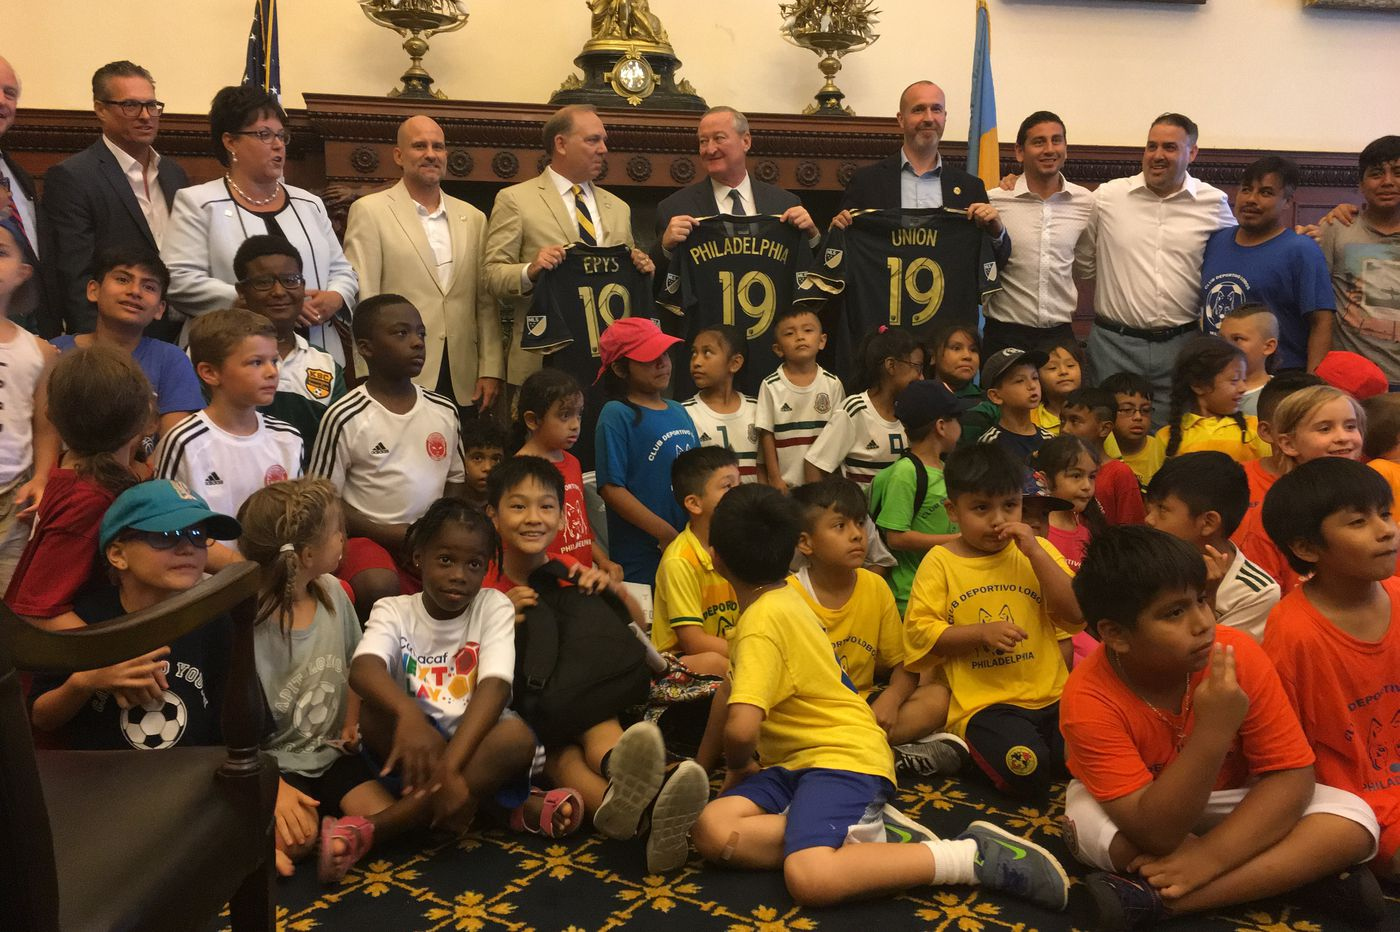 Union teams up with city to build 15 soccer mini-pitches and 2 new fields across Philly